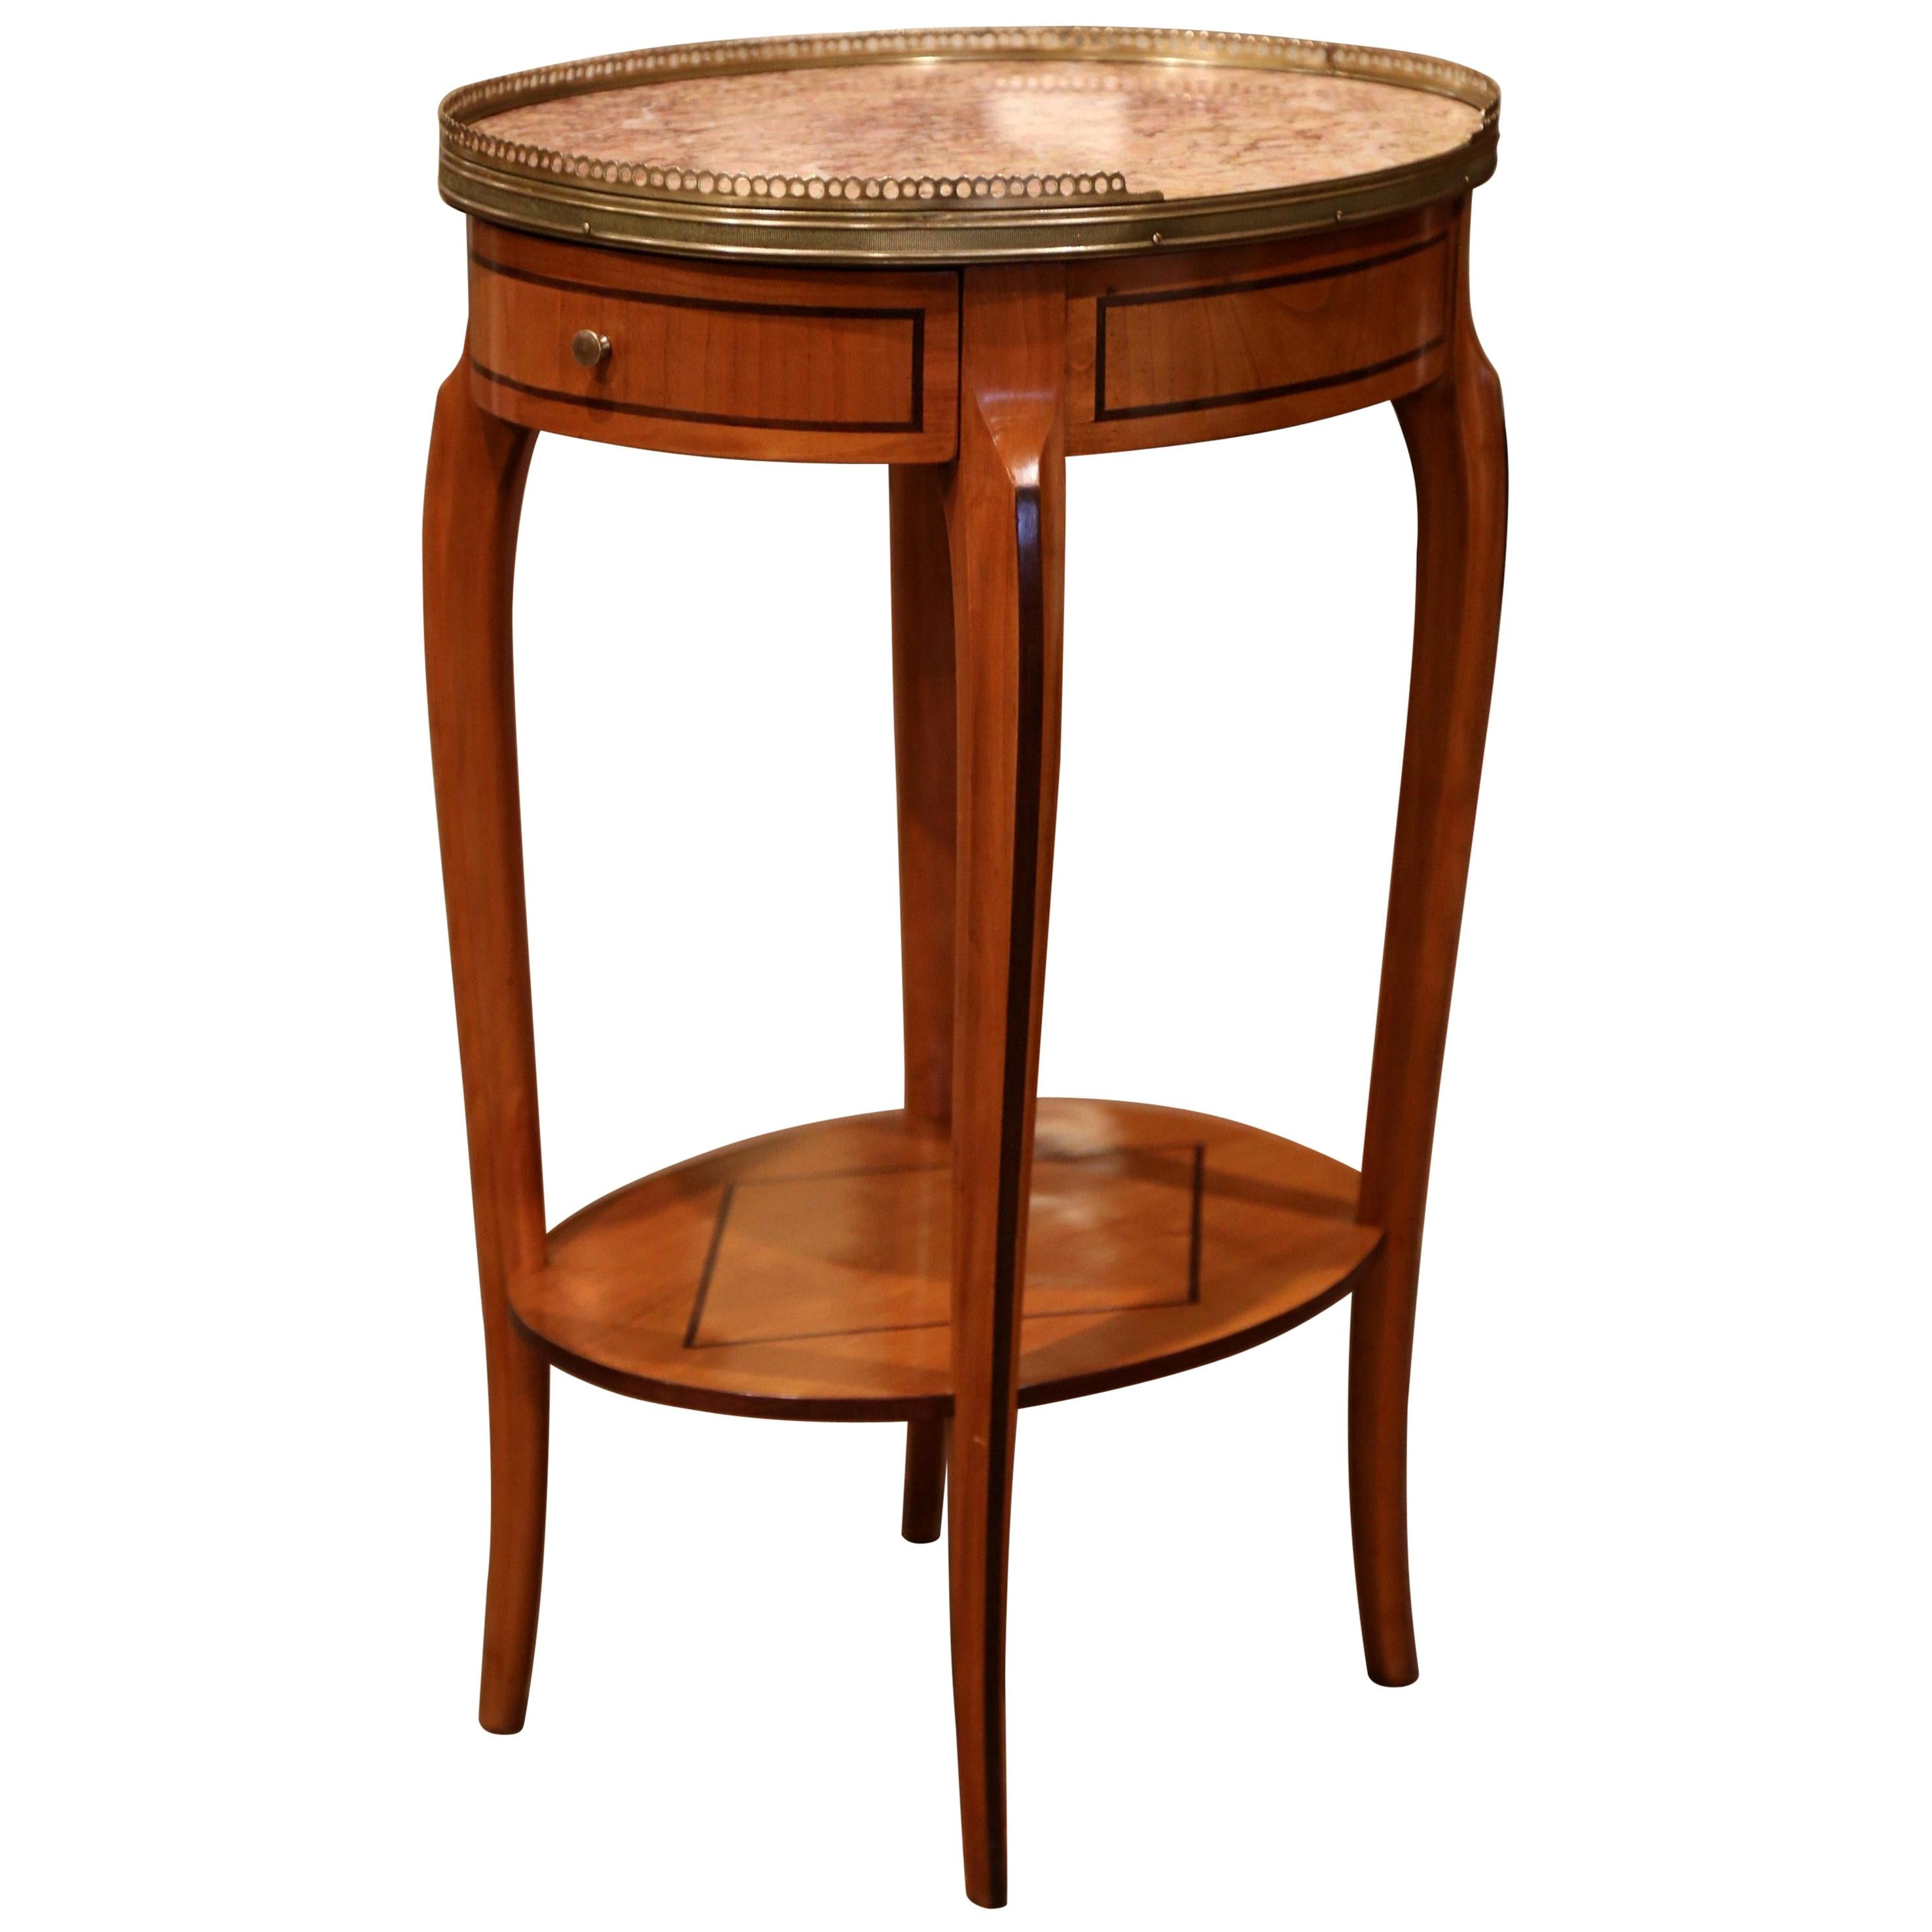 Mid-20th Century French Cherry Side Table with Marble Top and Brass Rim